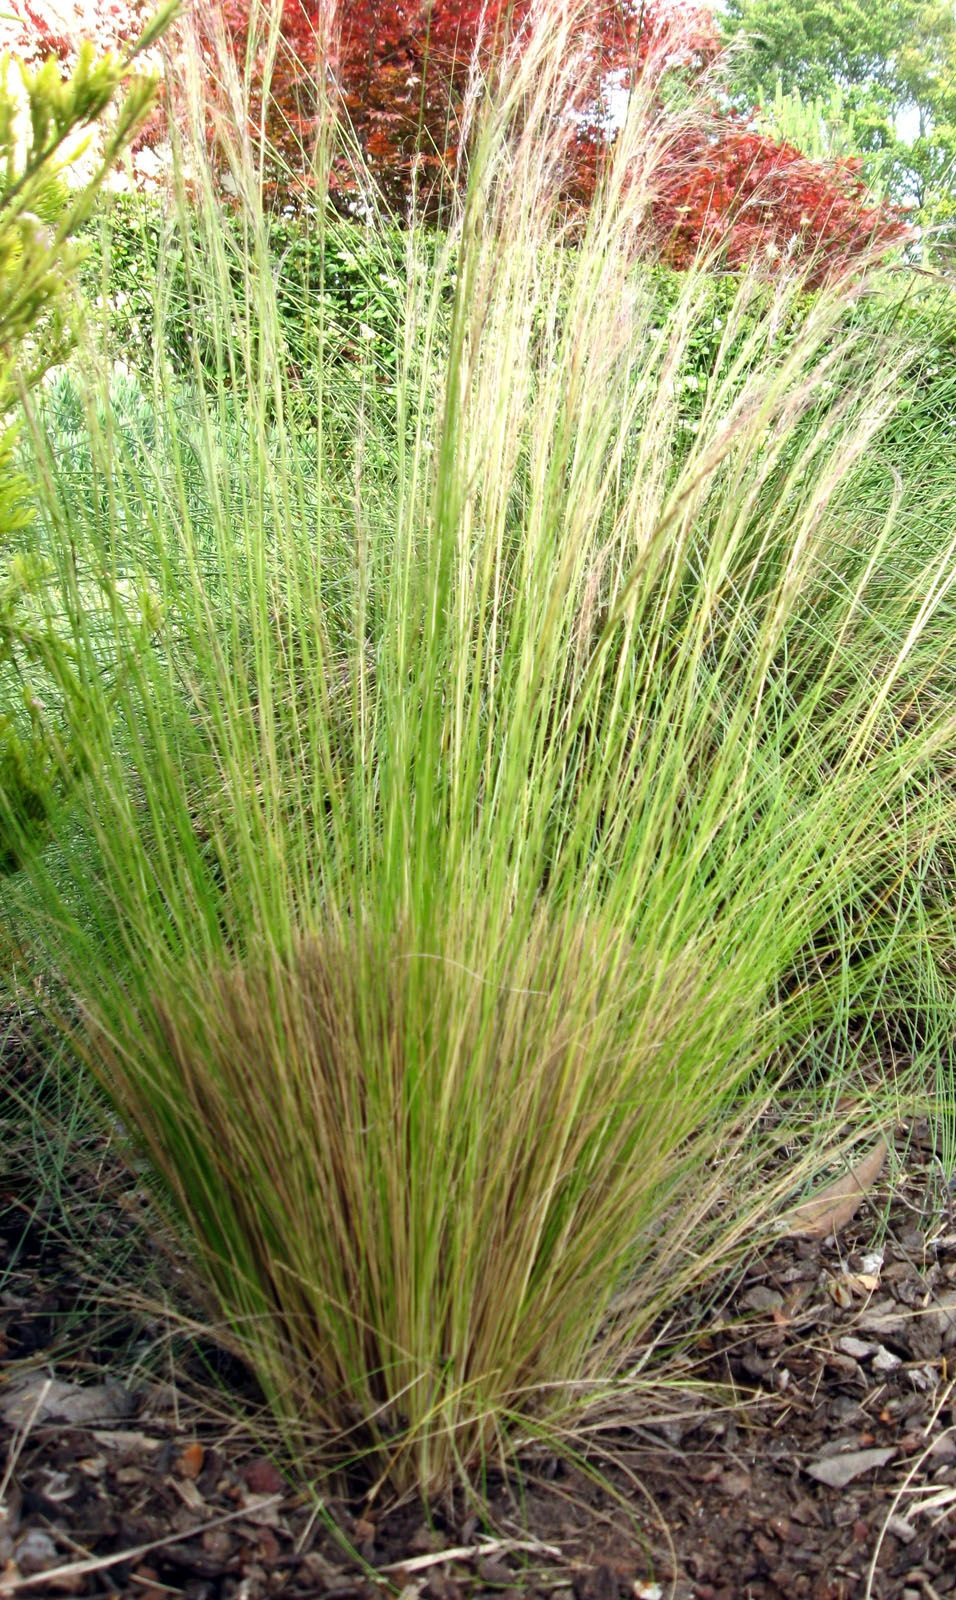 Drystonegarden Blog Archive Maintaining Ornamental Grasses Ornamental Grasses Native Plant Gardening Outdoor Plants